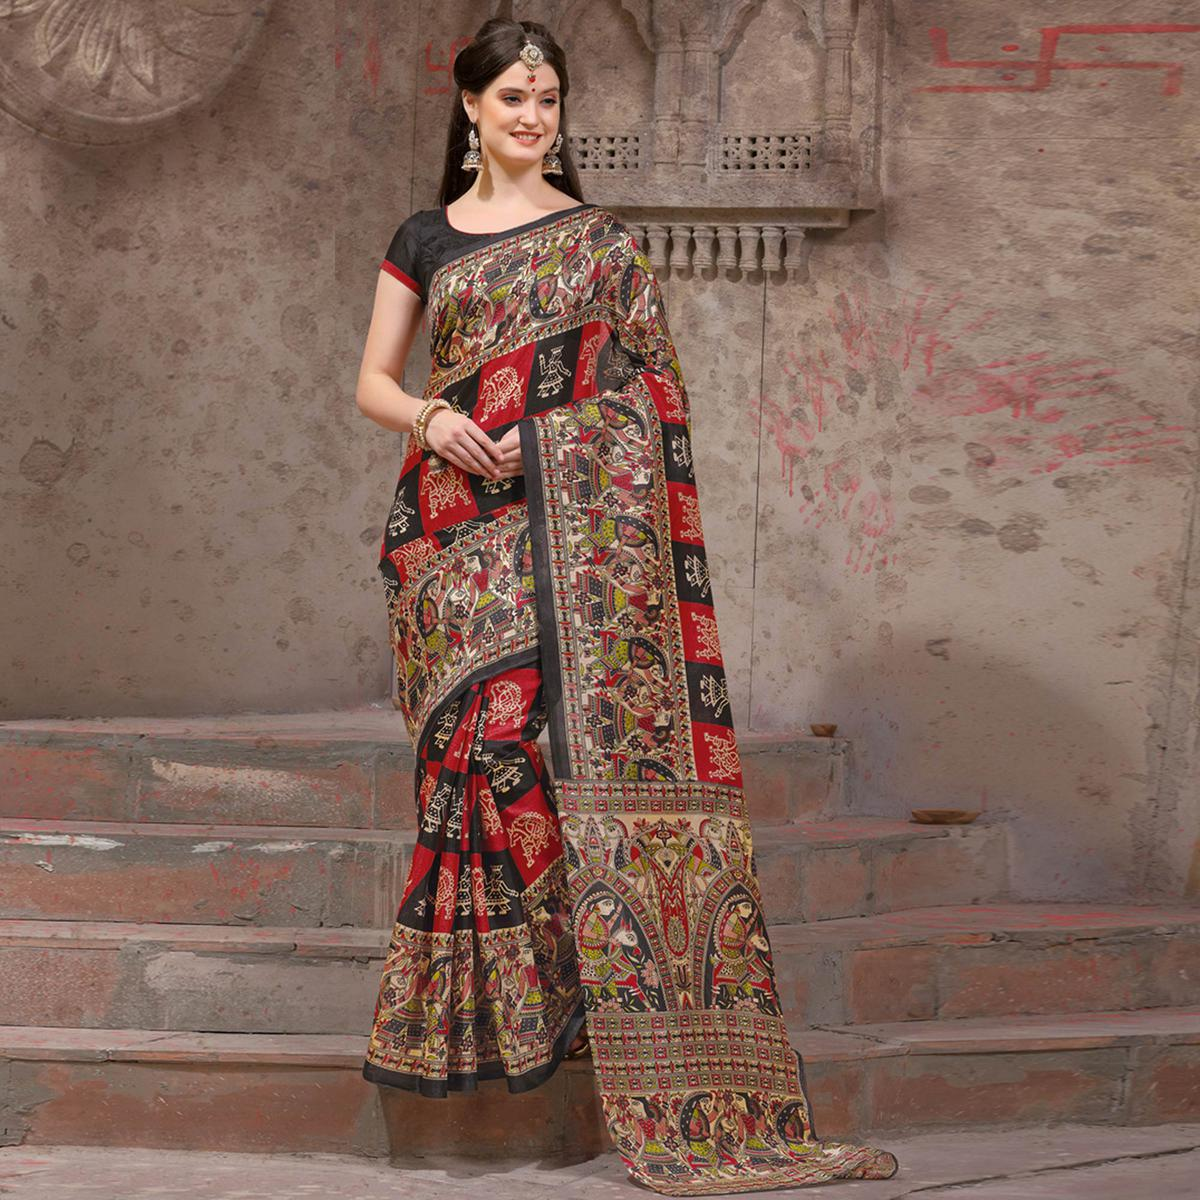 Classy Black - Red Festive Wear Madhubani Printed Khadi Silk Saree